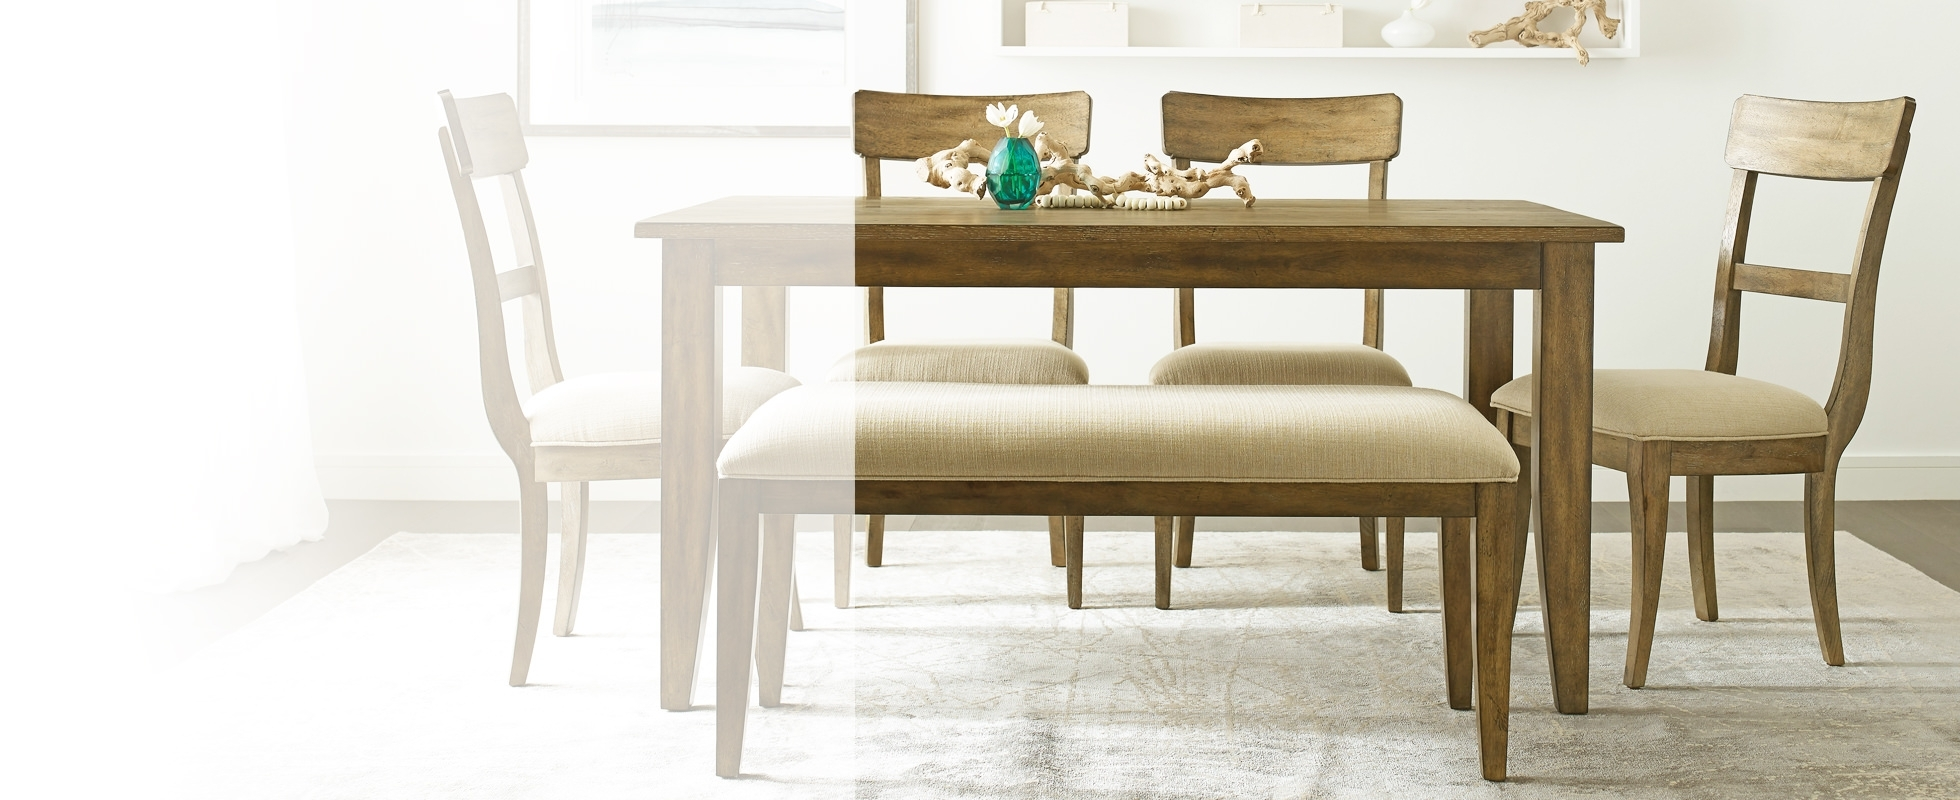 Dining Tables With Fold Away Chairs with Well-liked Kitchen & Dining Furniture